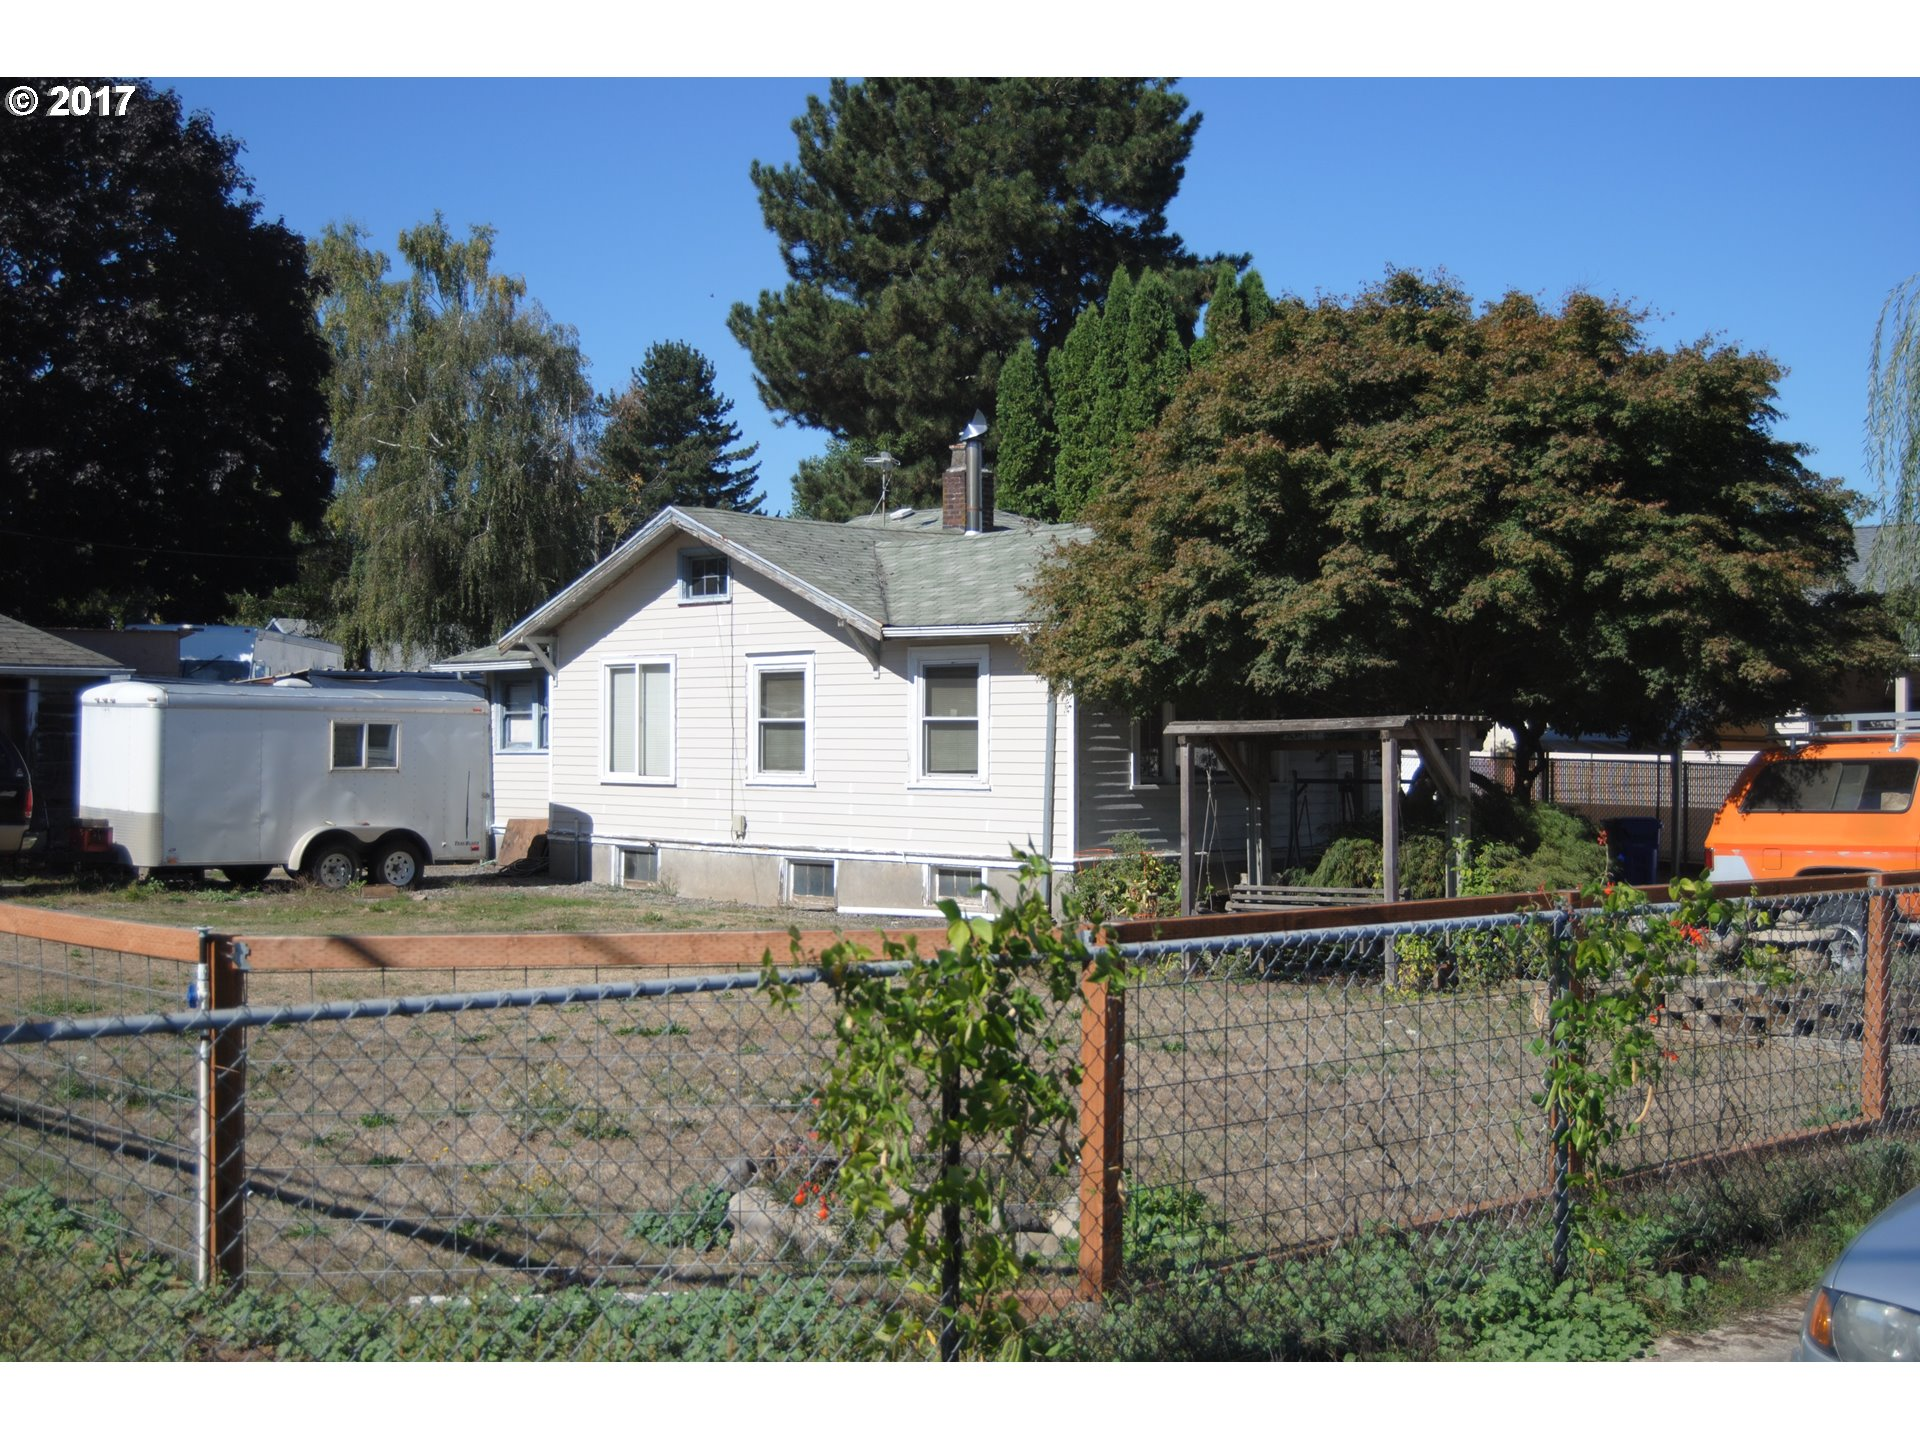 Great development possibility City of Portland says up to 10 dwelling on this corner lot one unit every 1000sqft buyer to do due diligence. Bring your builders. Builders pack available on request. This property is 3.7 miles from airport, .7 miles to max, and .5 miles from 205.